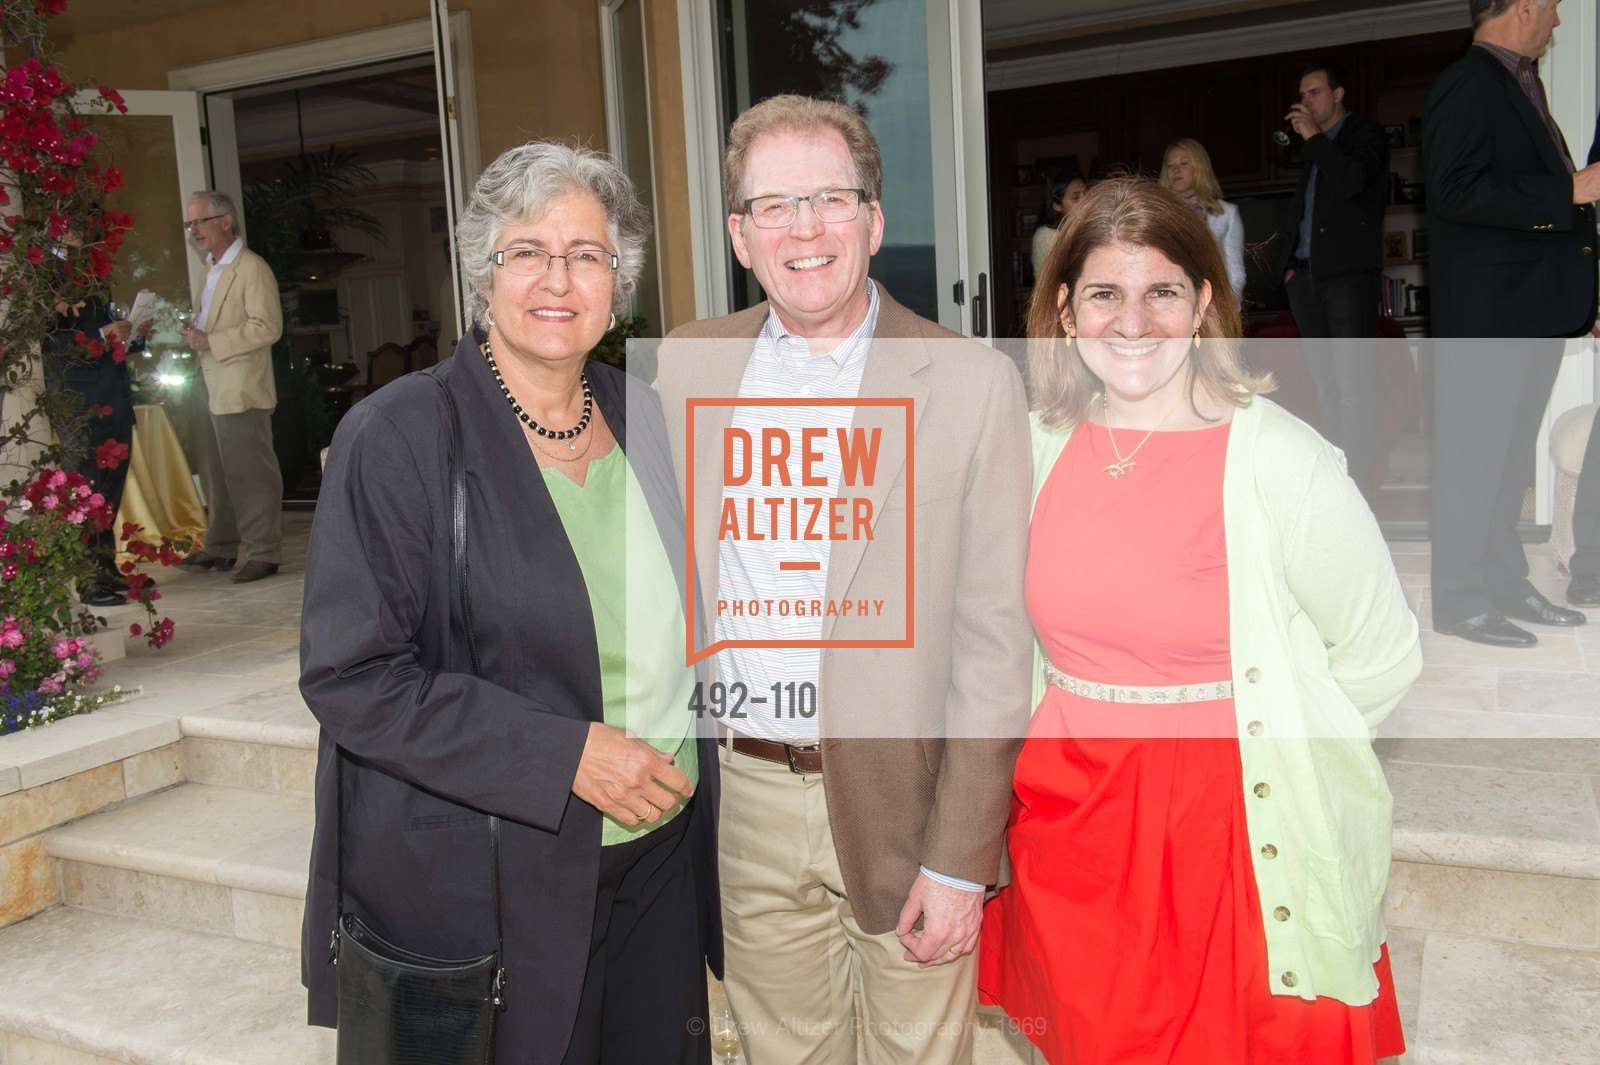 Lisa Keany, Lloyd Minor, Kerima Greene, LYME AID 2015 Benefiting the Bay Area Lyme Foundation, Private Residence, May 16th, 2015,Drew Altizer, Drew Altizer Photography, full-service agency, private events, San Francisco photographer, photographer california